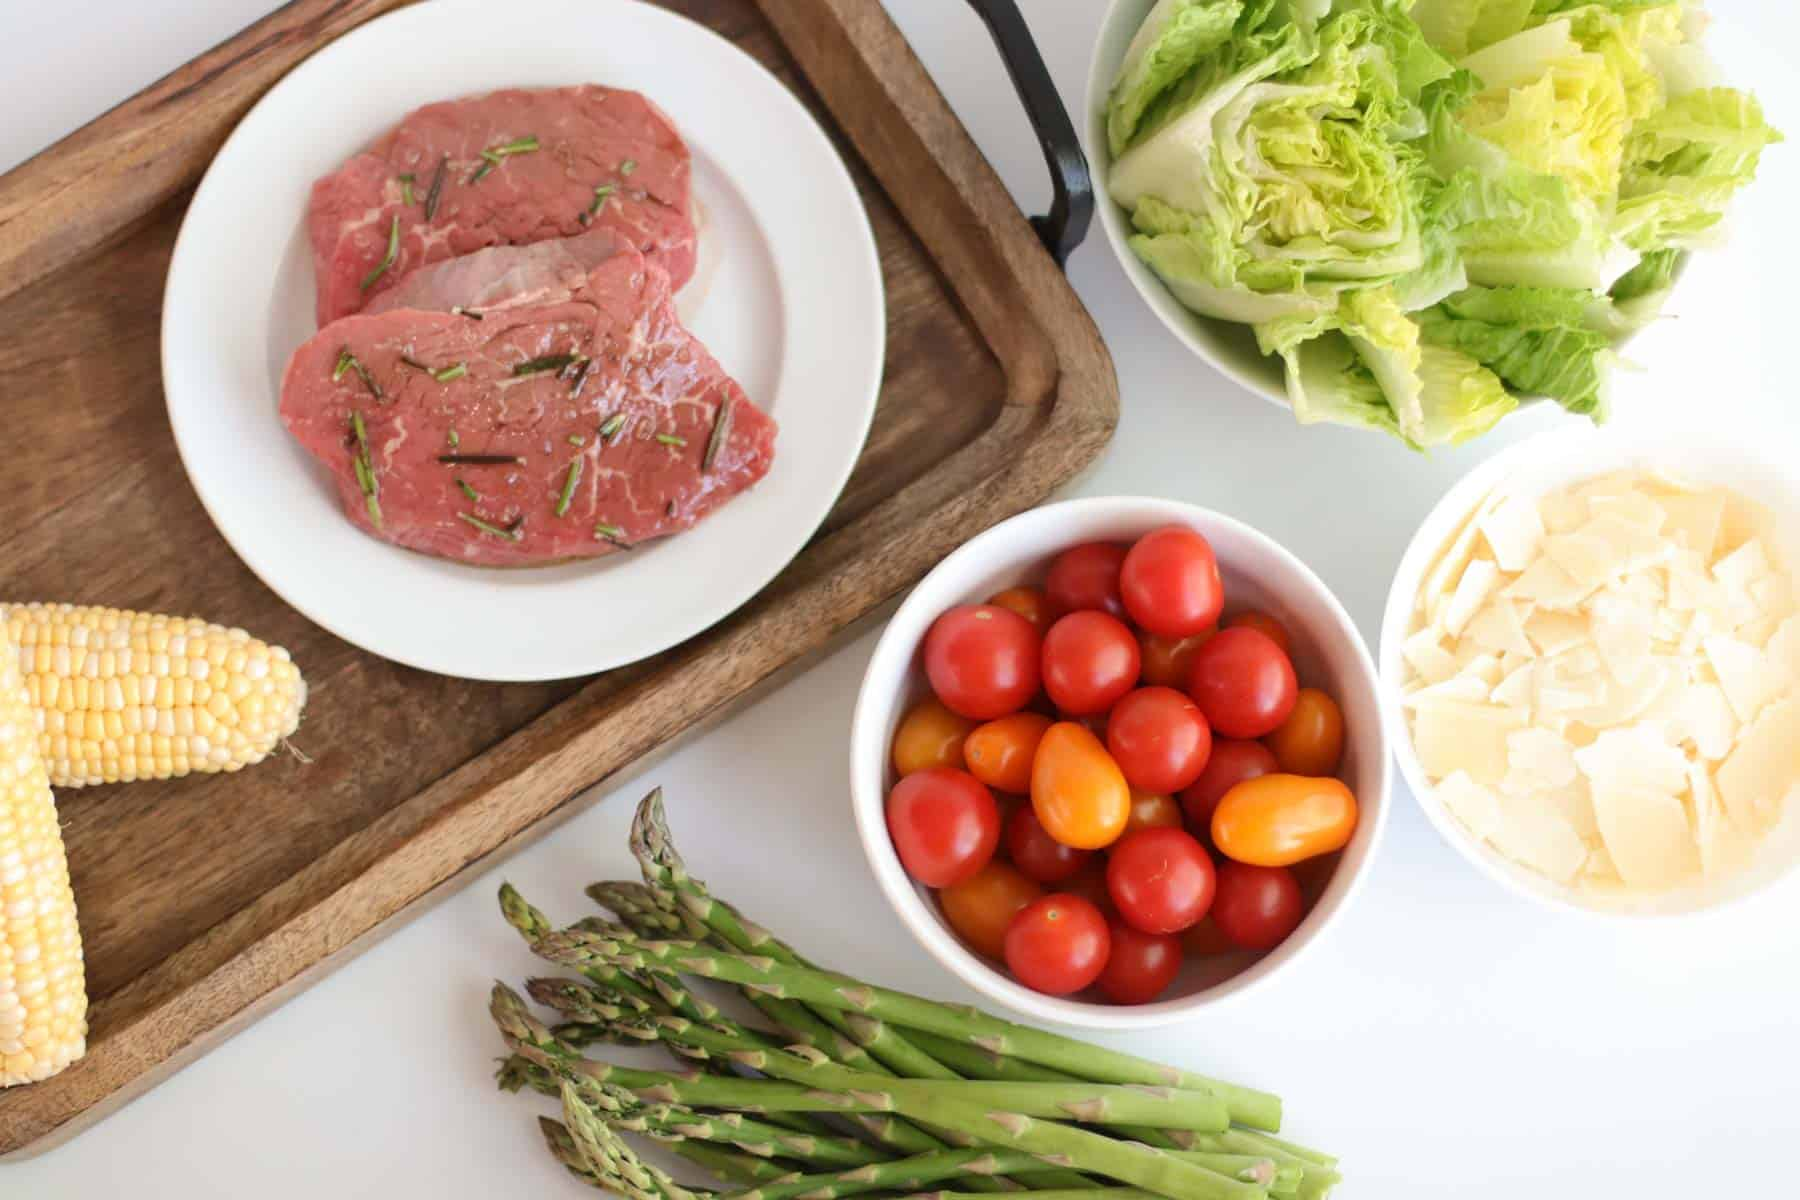 marinated steak, stacks of raw corn and asparagus, and bowls of chopped romaine, small tomatoes, and shaved parmesan